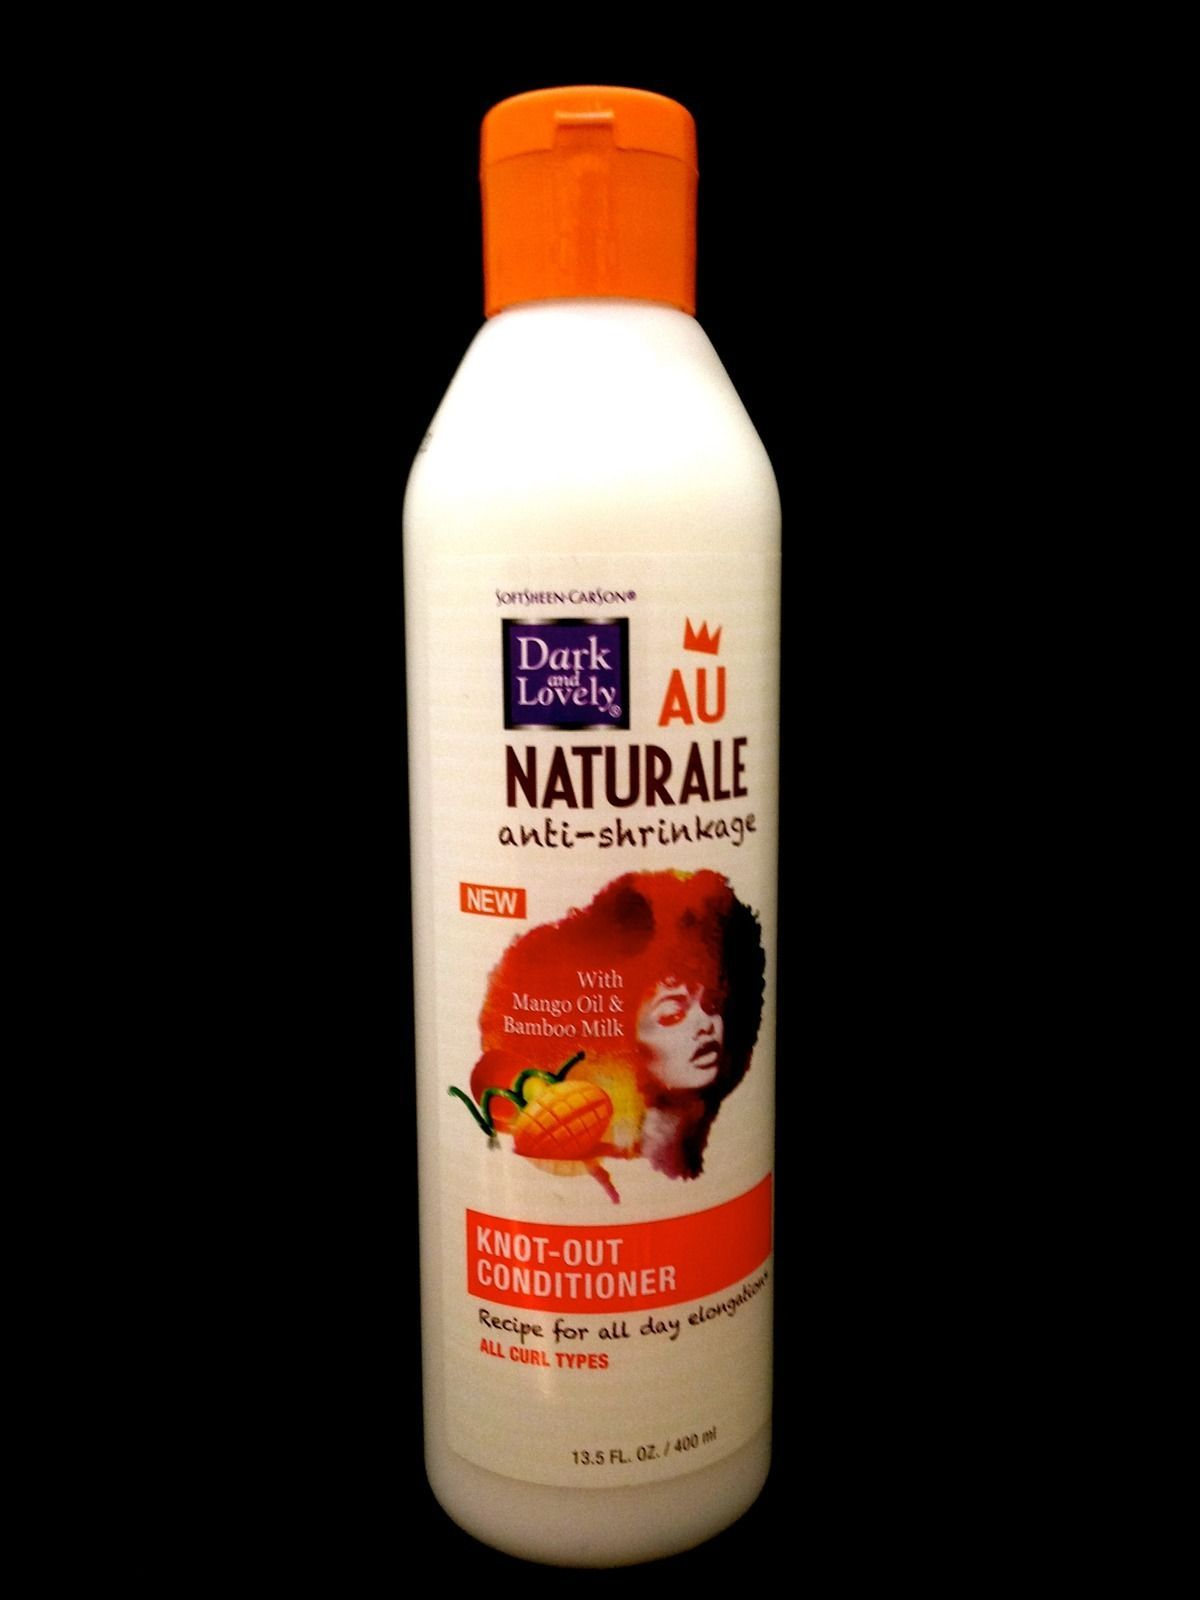 DARK AND LOVELY AU NATURALE ANTI SHRINKAGE KNOT OUT CONDITIONER FOR ALL CURLS